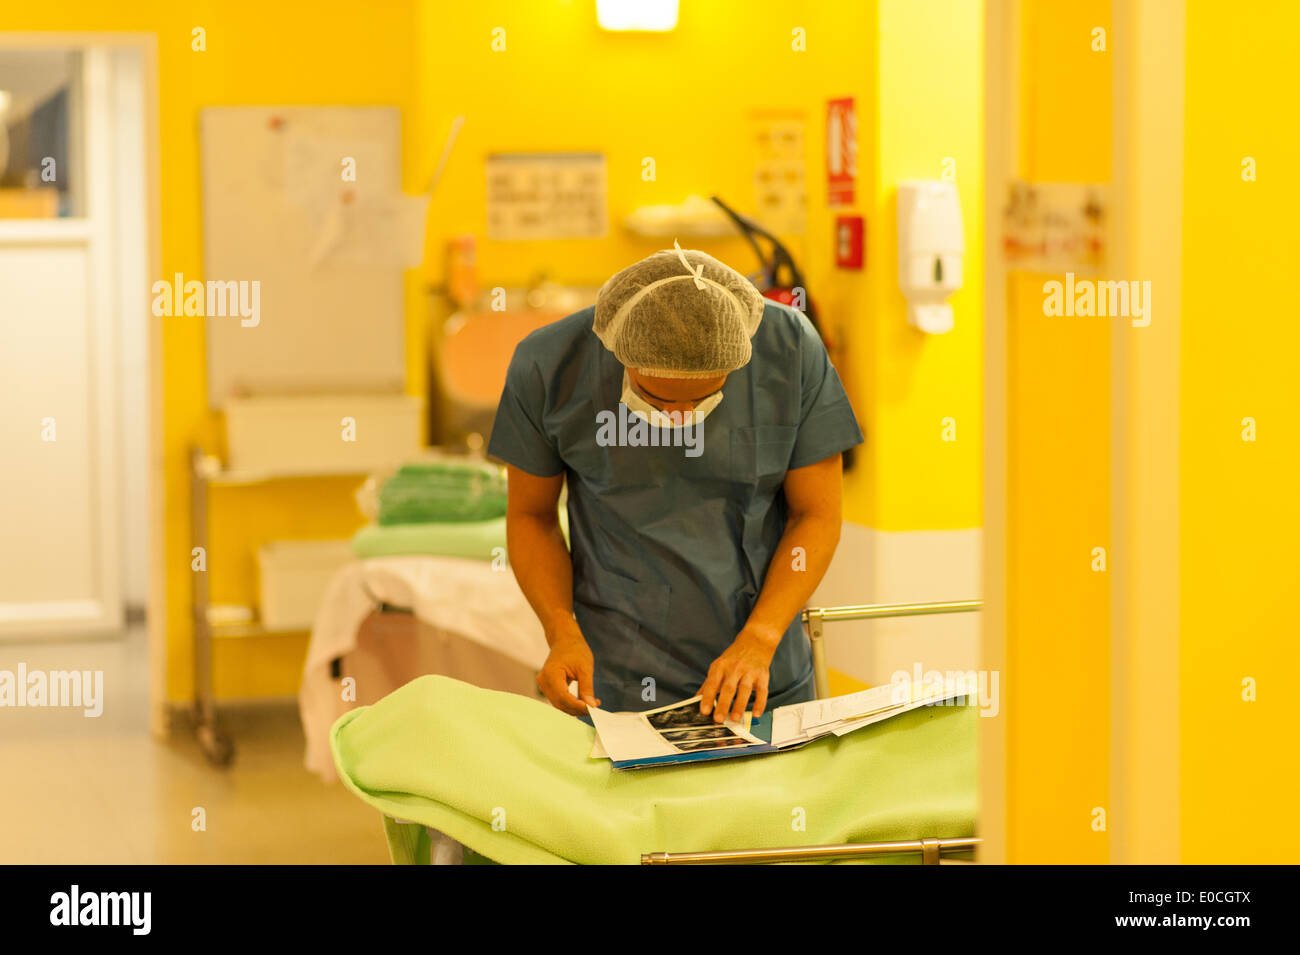 Obstetrician gynecologist - Stock Image